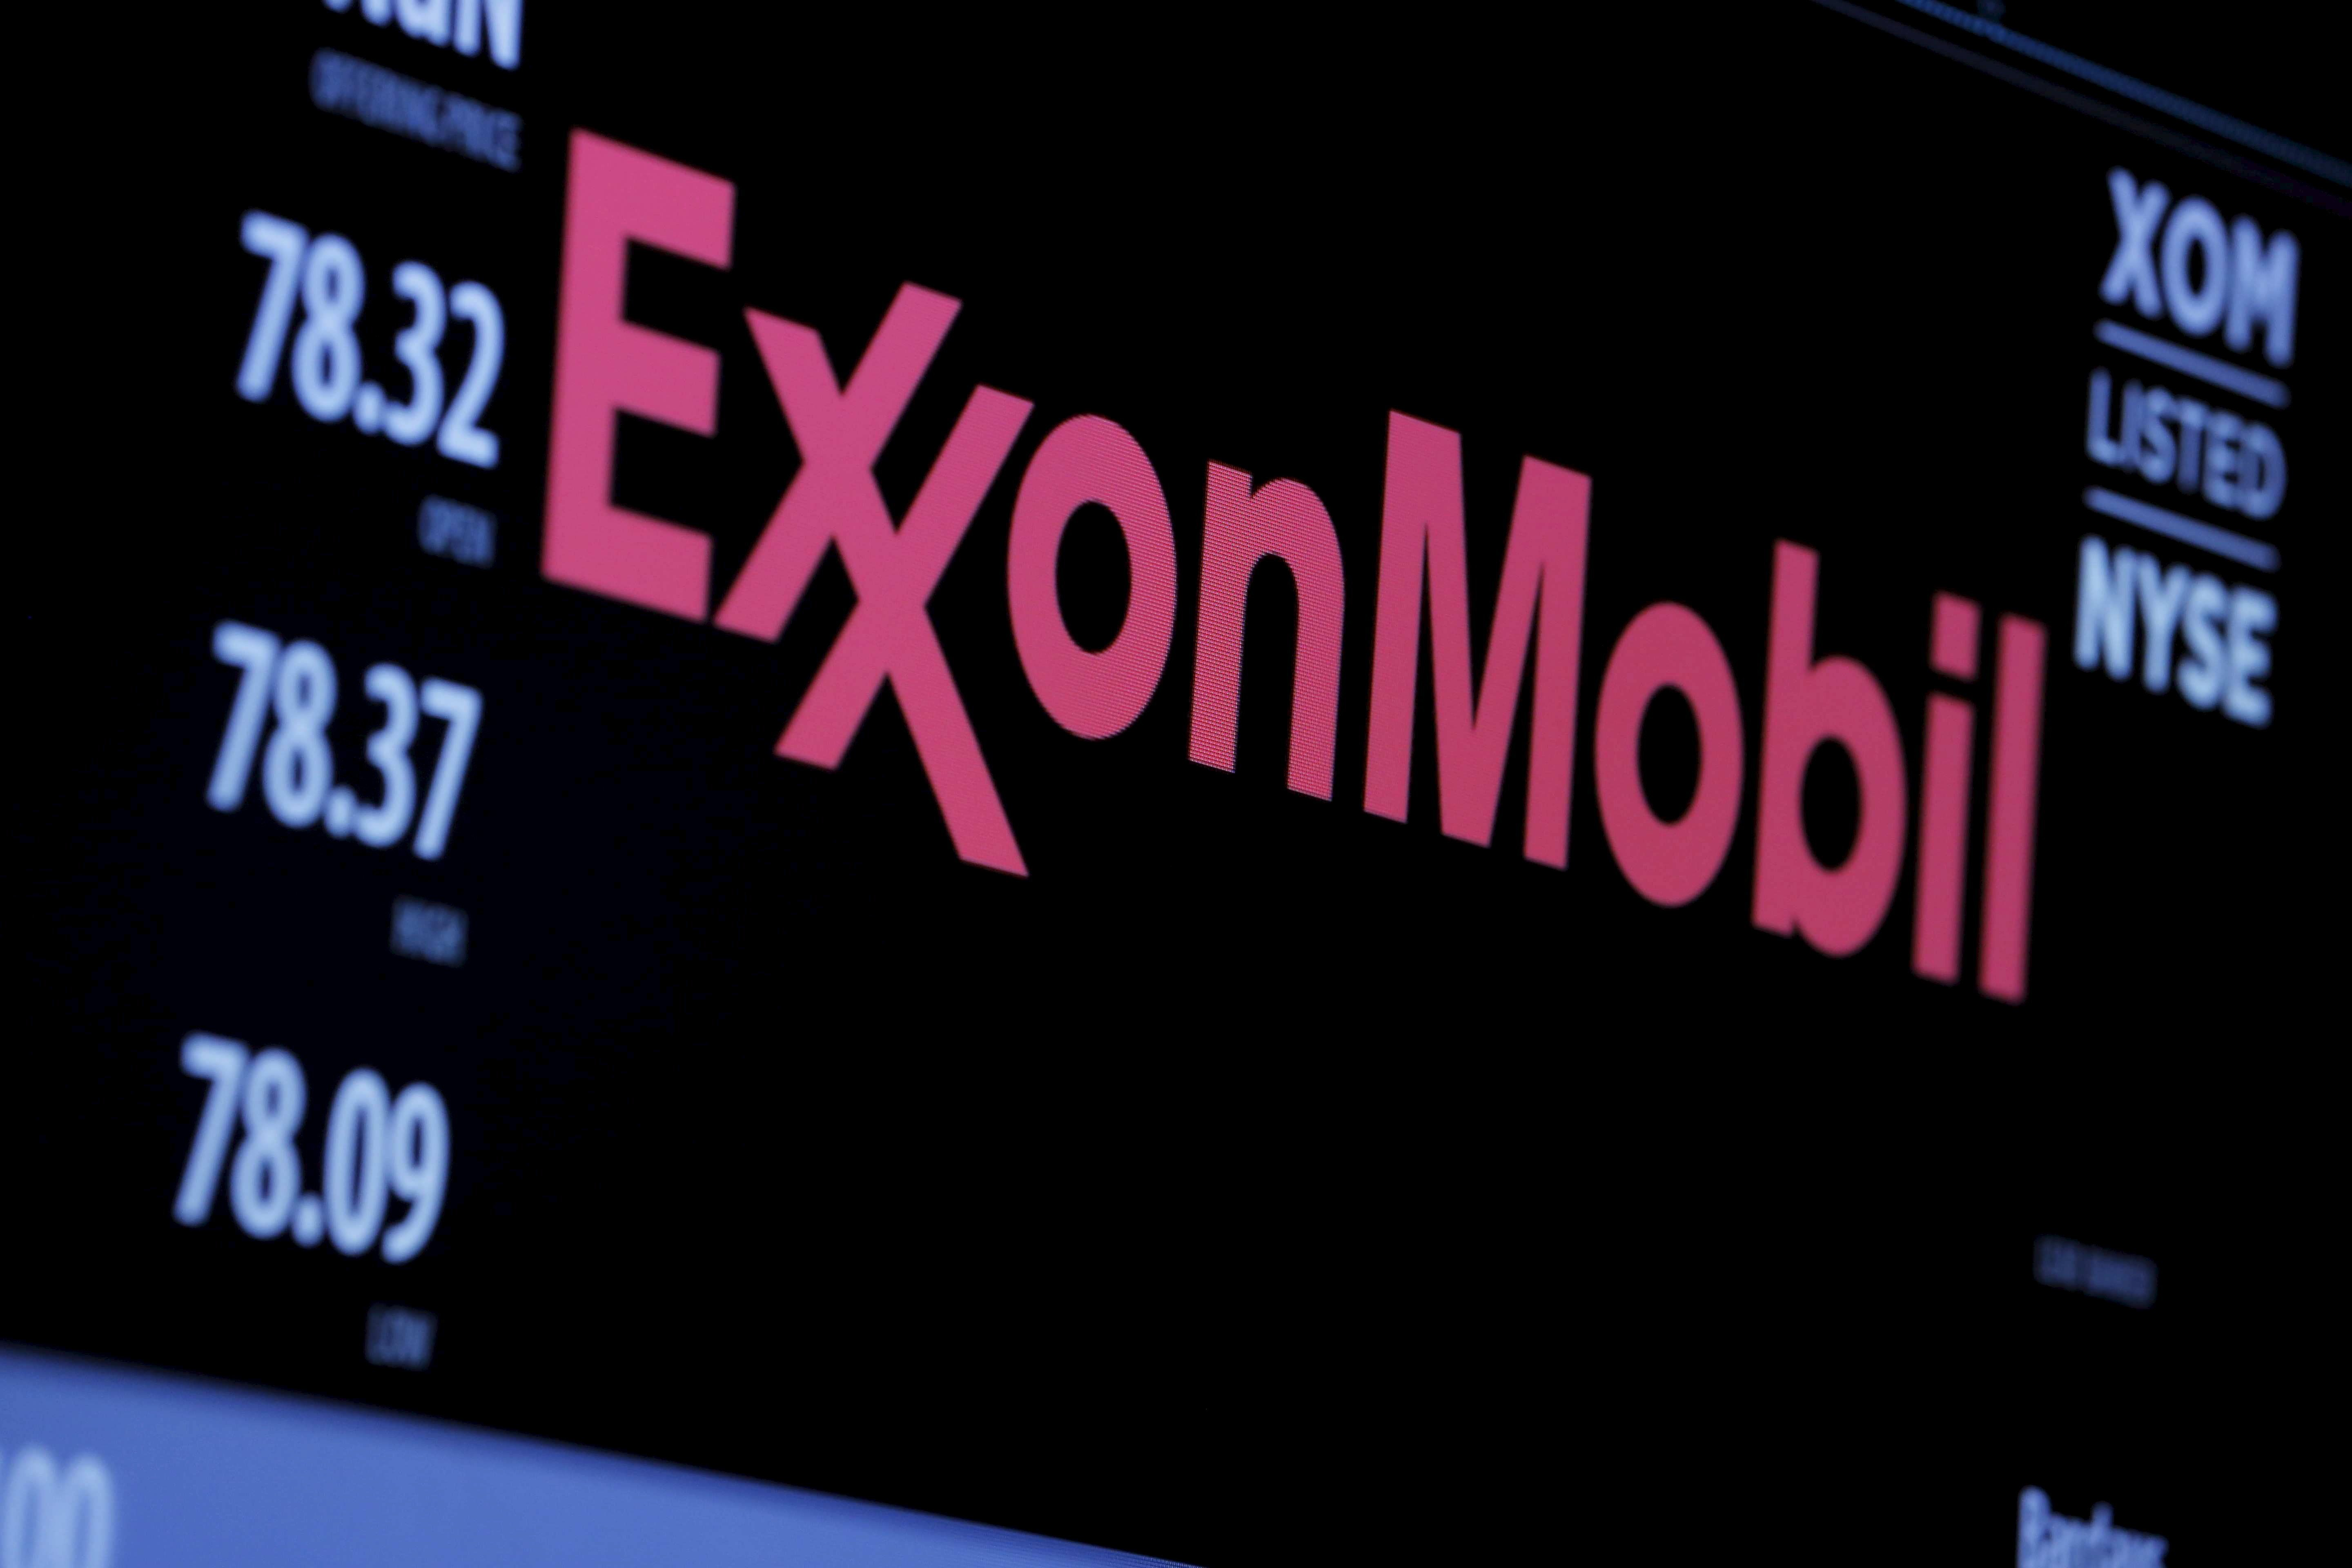 The logo of Exxon Mobil Corporation is shown on a monitor above the floor of the New York Stock Exchange in New York, New Yor